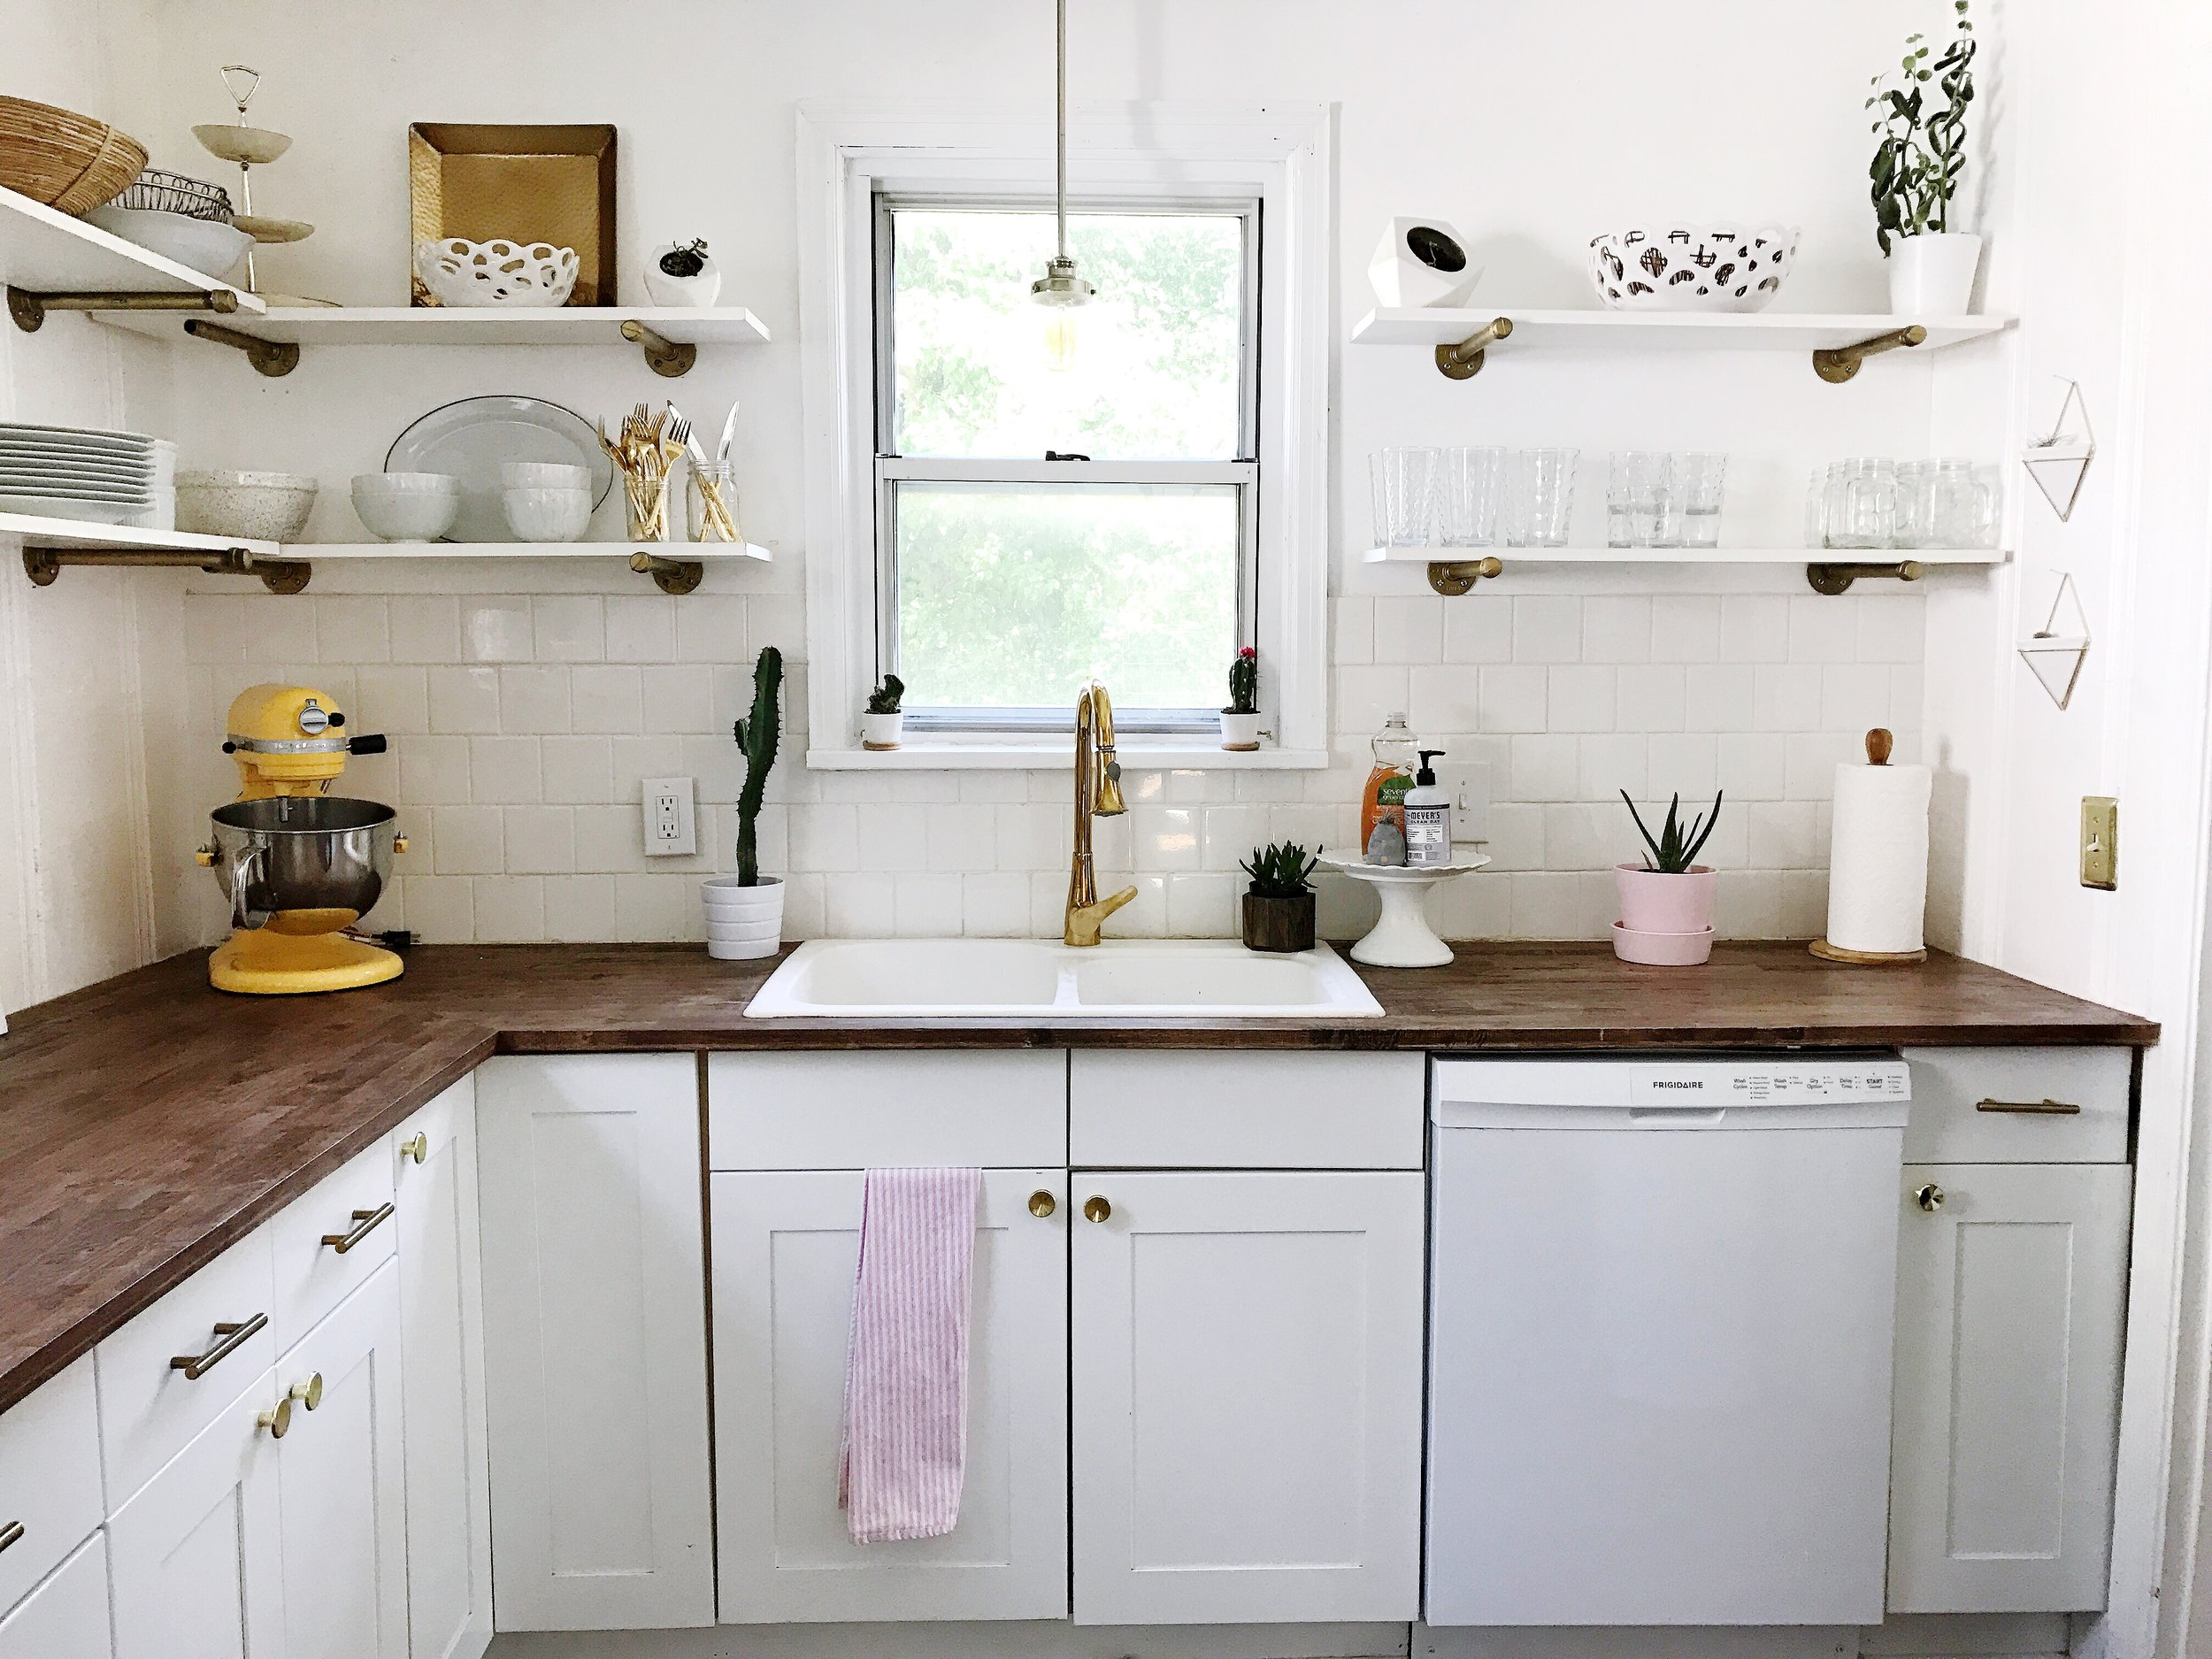 We loved the idea of open shelving. We are trying to adapt to a minimalist lifestyle, so we didn't need much cabinet space. We made our shelves out of galvanized pipe that we sprayed gold, and white pre-treated wood.